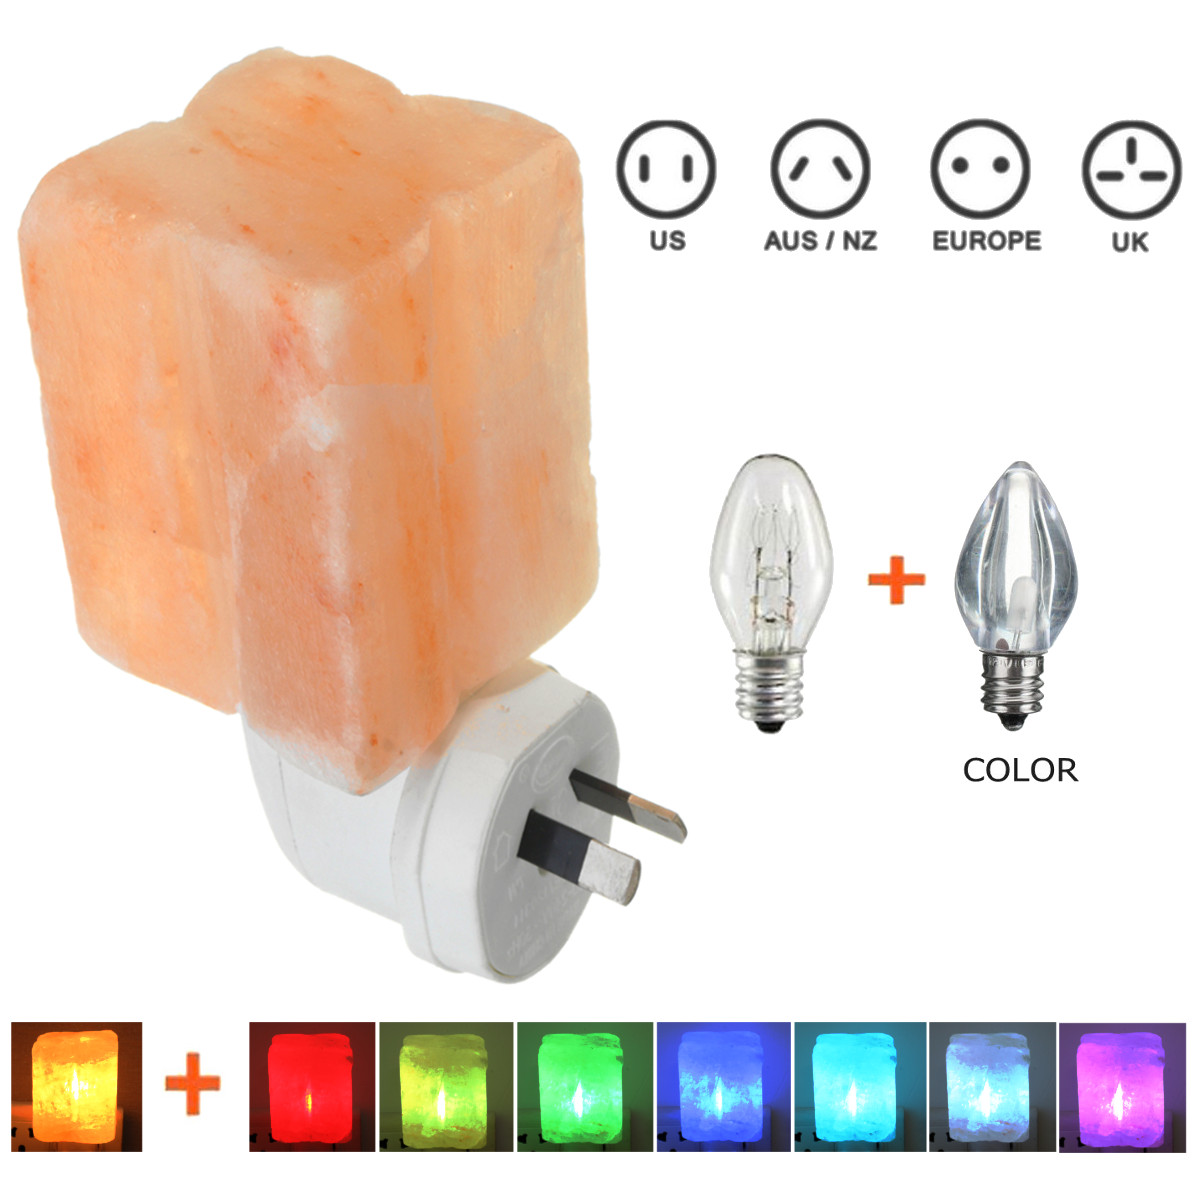 Mini Himalayan Salt Crystal Four Leaf Shape Wall Night Light 7 Color Change Lamp Fixtures Bedside Bedroom Home Decoration Gift